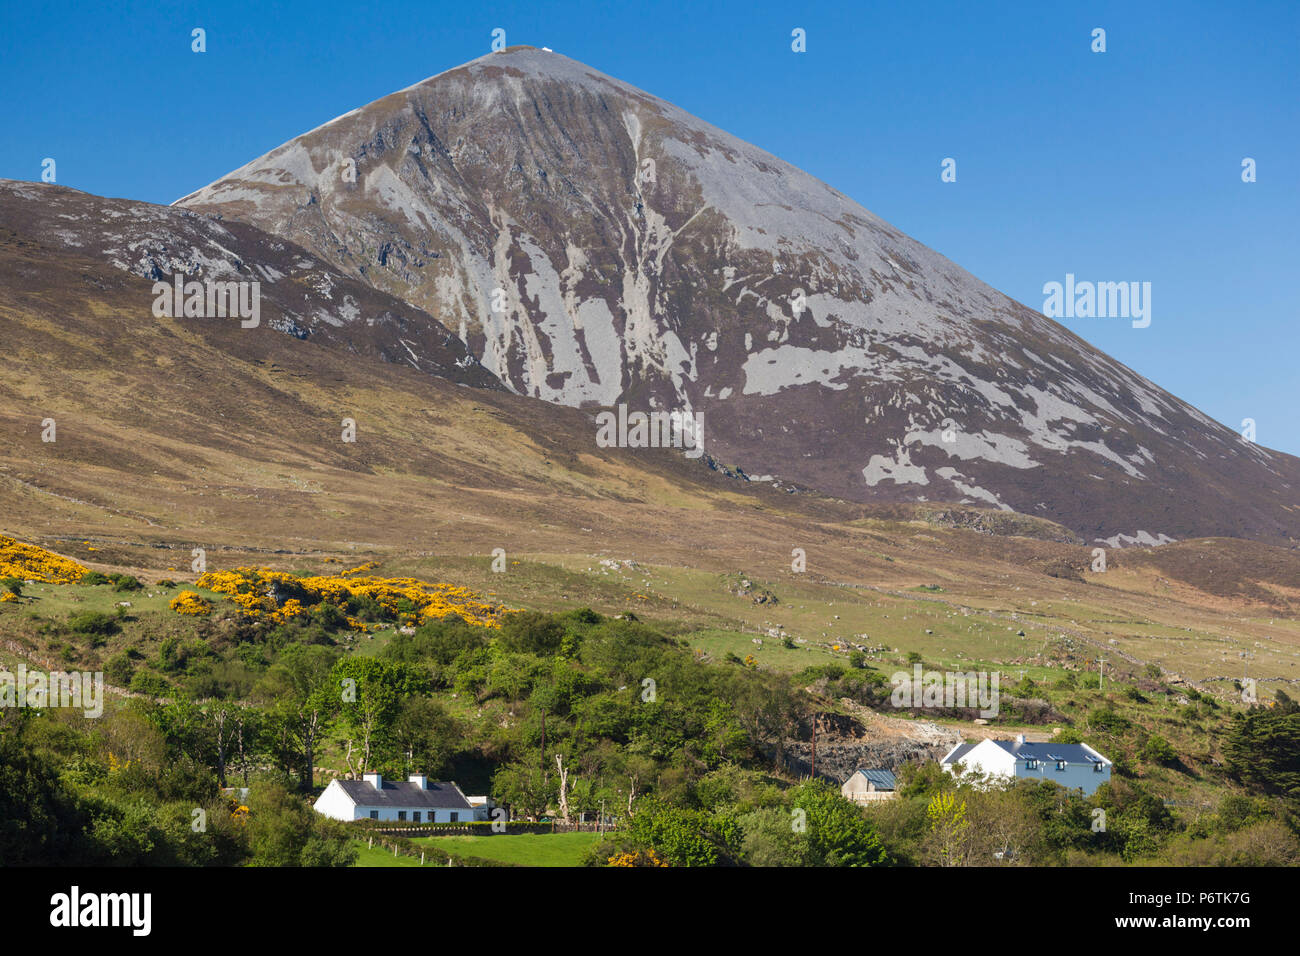 Ireland, County Mayo, Murrisk, view of Croagh Patrick Holy Mountain - Stock Image